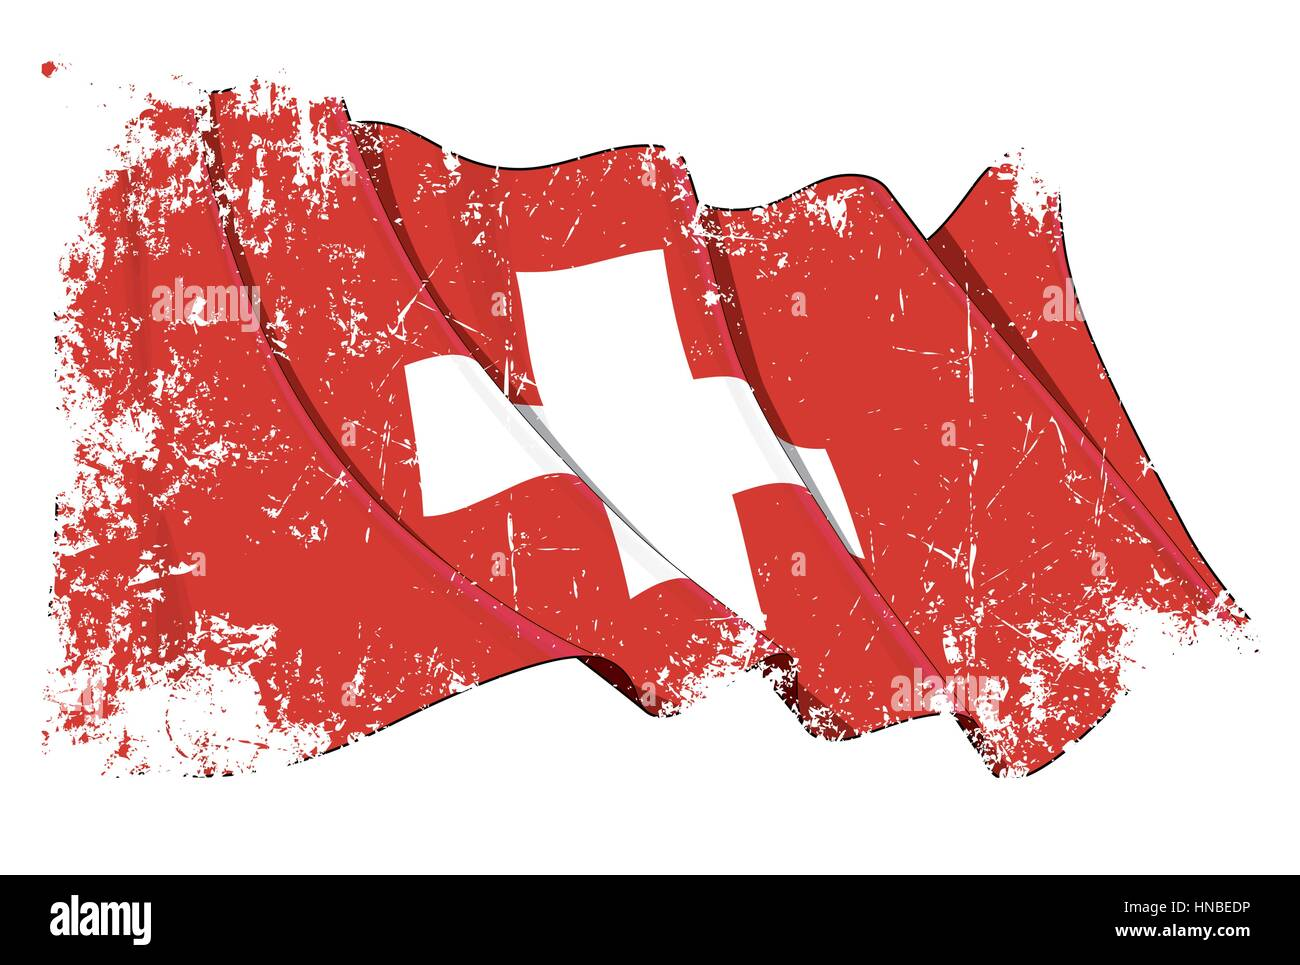 Grunge Vector Illustration of a waving Swiss Flag. All elements neatly organized. Texture, Lines, Shading & - Stock Vector